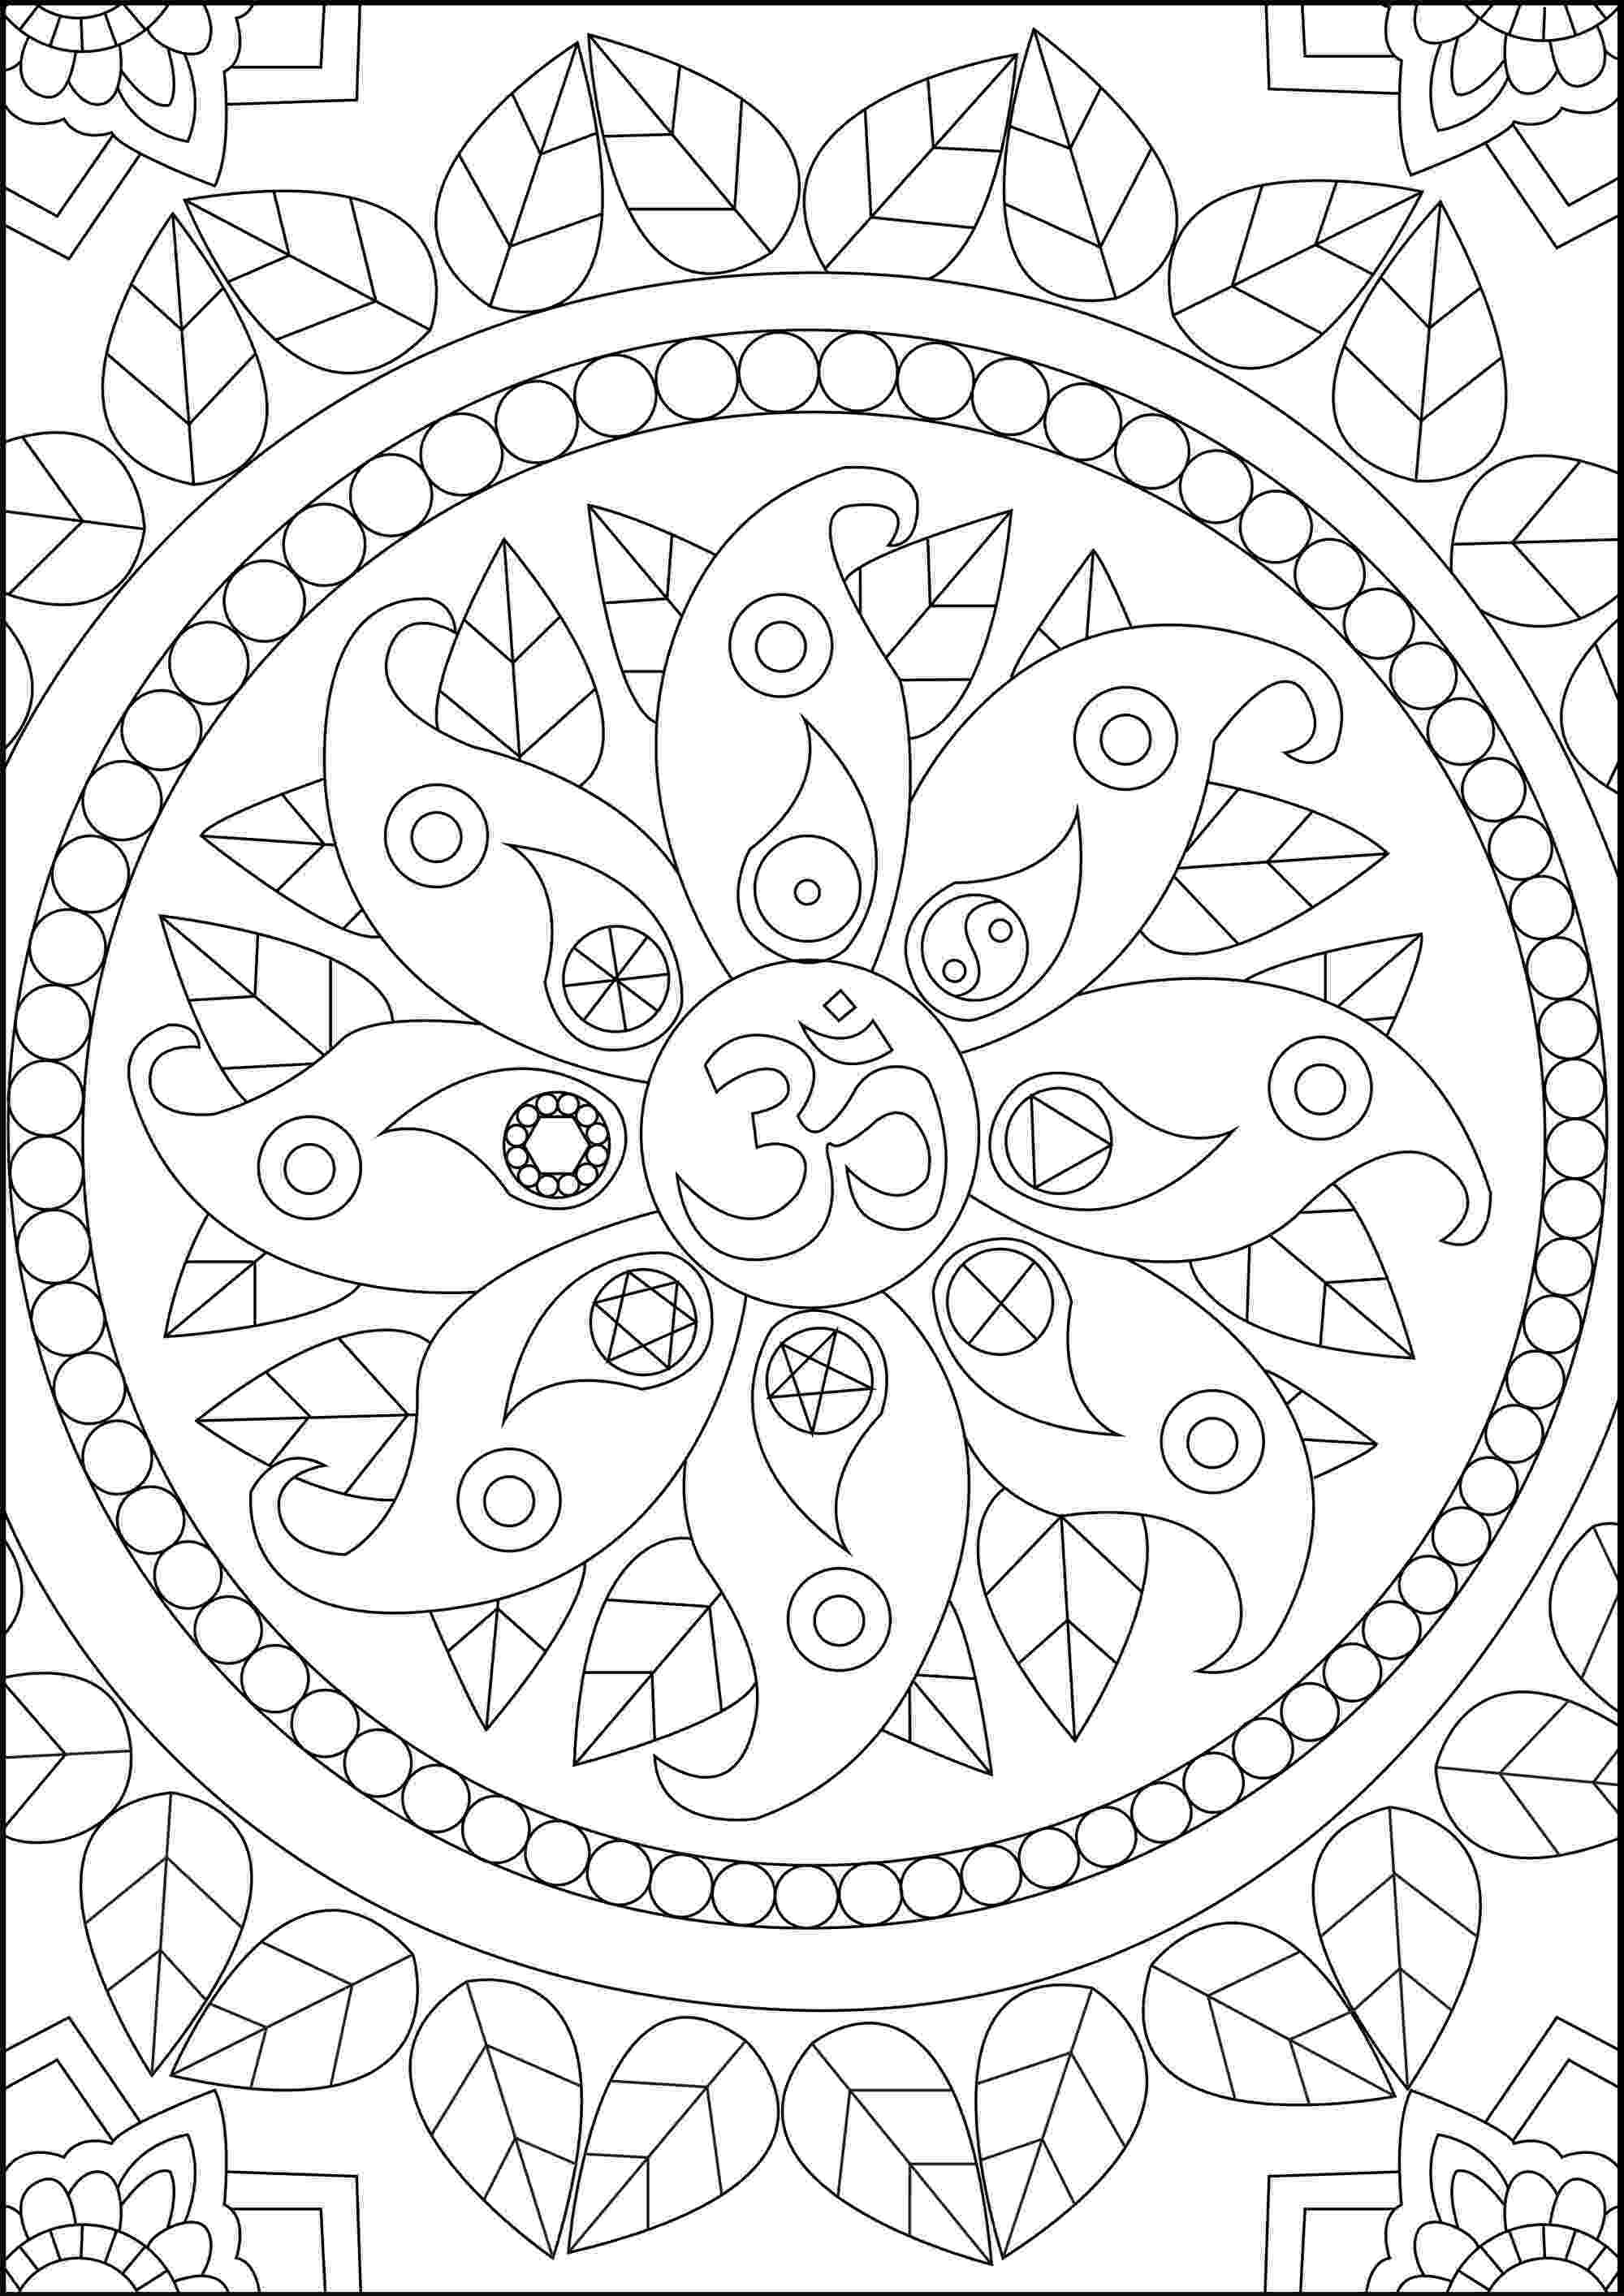 anti stress coloring book review forest fairy with wreath on head hugging swan in flower stress review coloring book anti